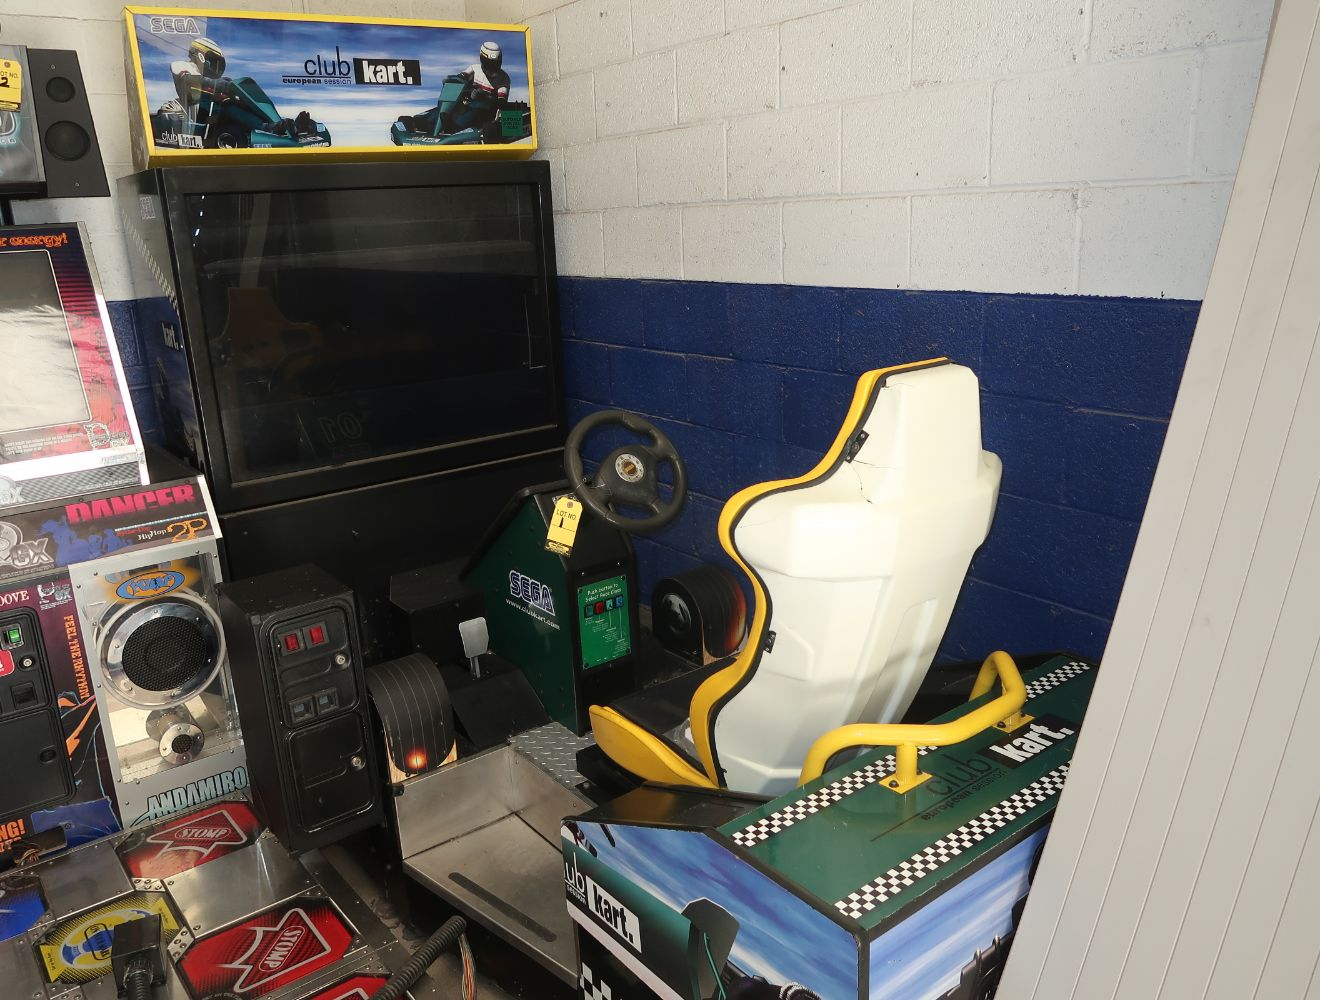 ONLINE PUBLIC AUCTION: EQUIPMENT RECENTLY PULLED FROM SERVICE IN MAJOR PIZZA CHAIN